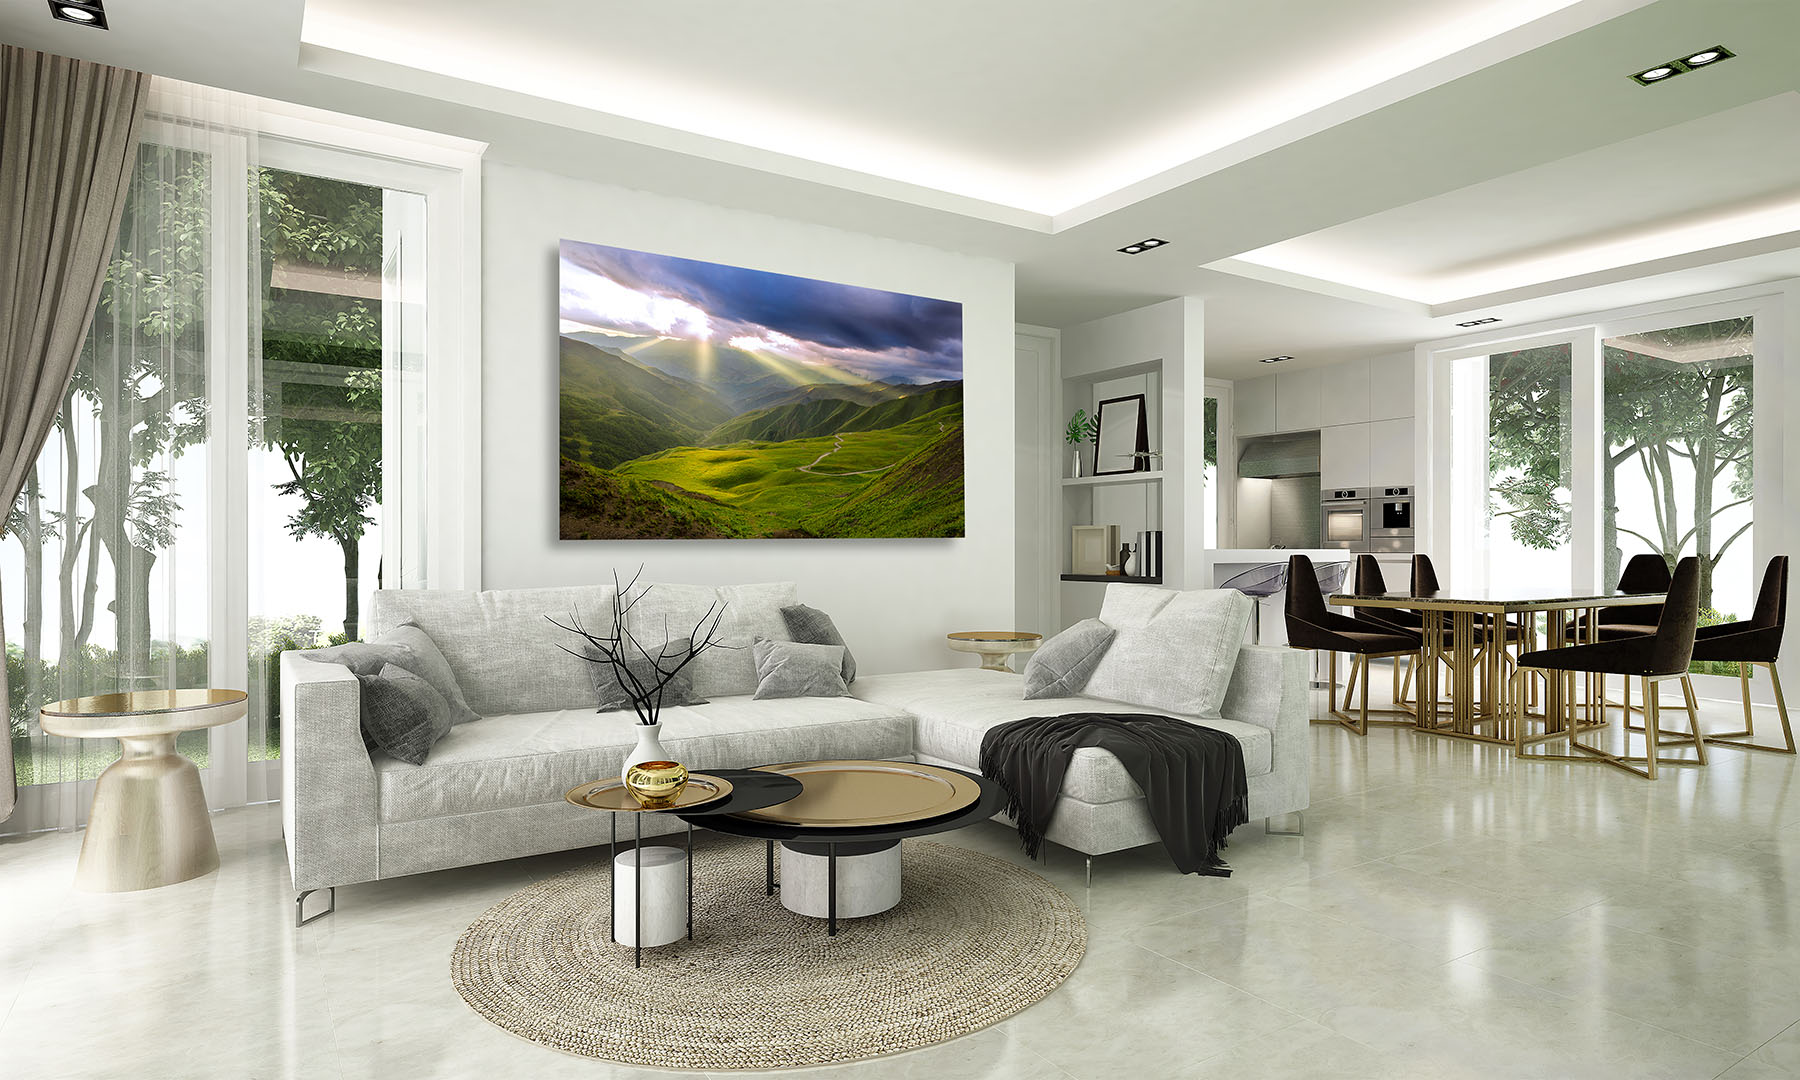 Heaven on Earth fine art print in a living room